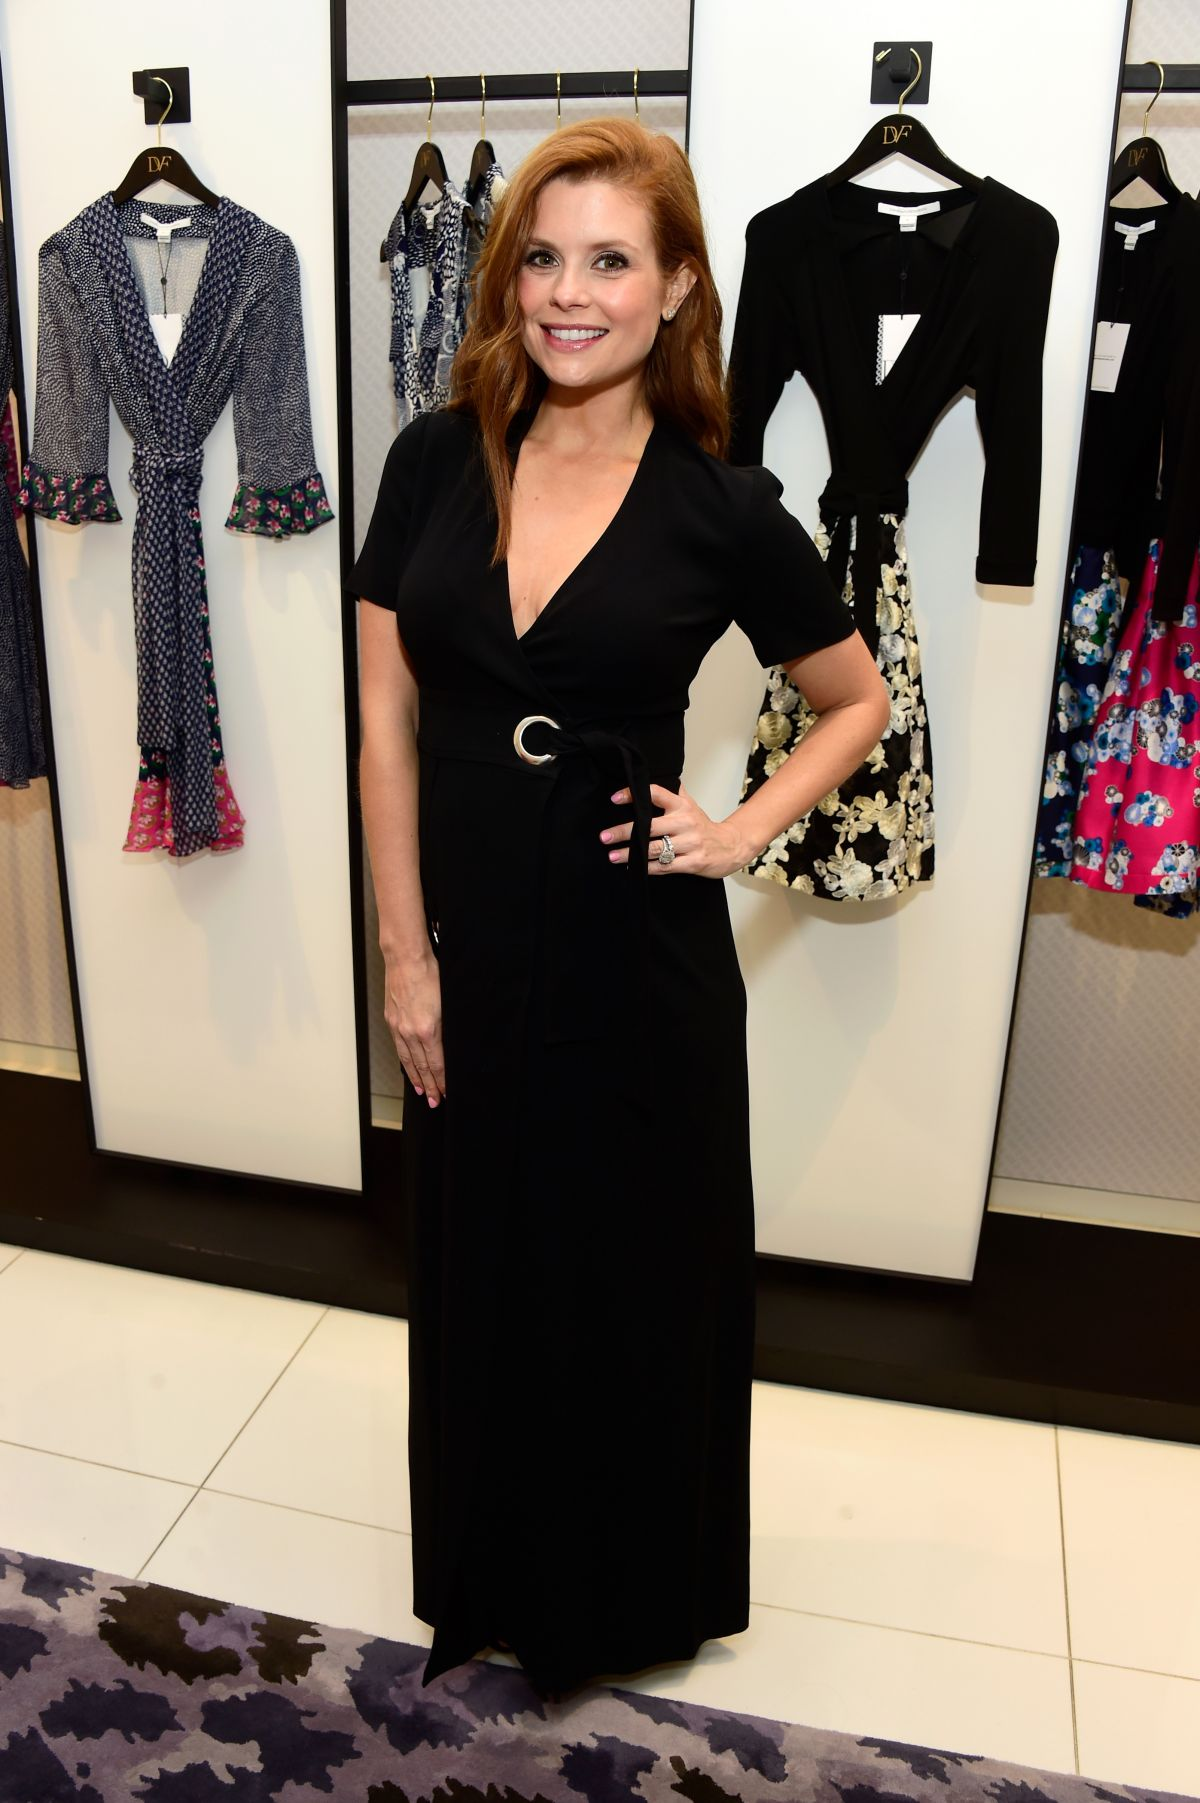 JOANNA GARCIA SWISHER at a Shopping Event at Diane Von Furstenberg in Los Angeles 02/25/2016